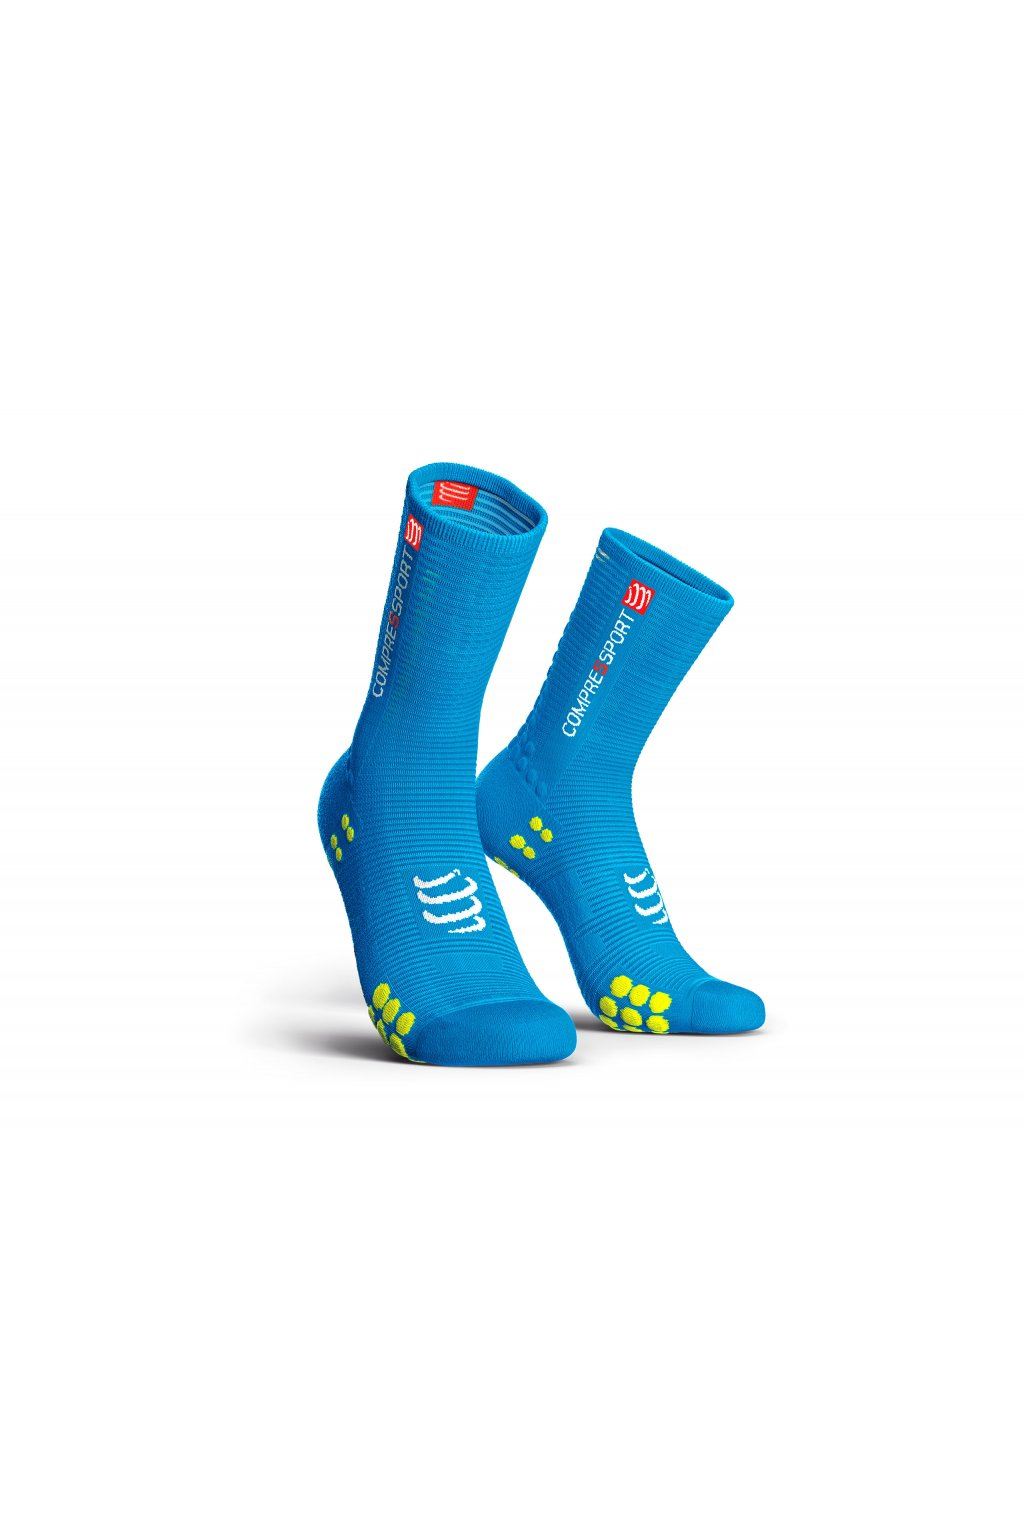 compression cycling socks